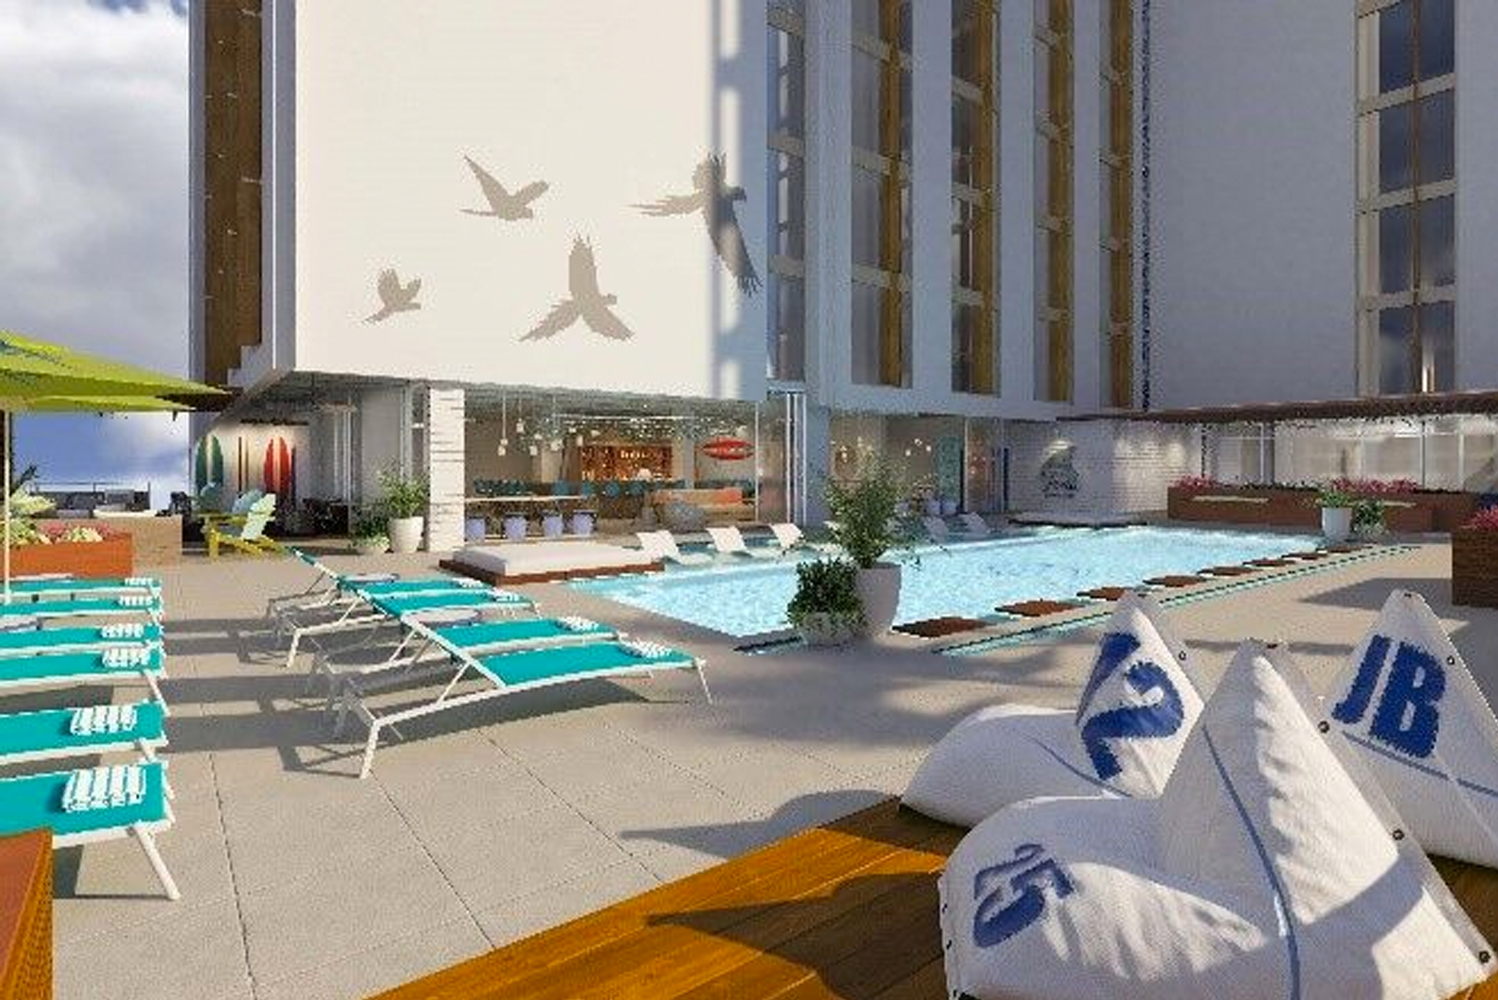 When it is completed, Margaritaville Nashville Hotel will have a rooftop relaxation and entertainment area, located on the 4th floor.